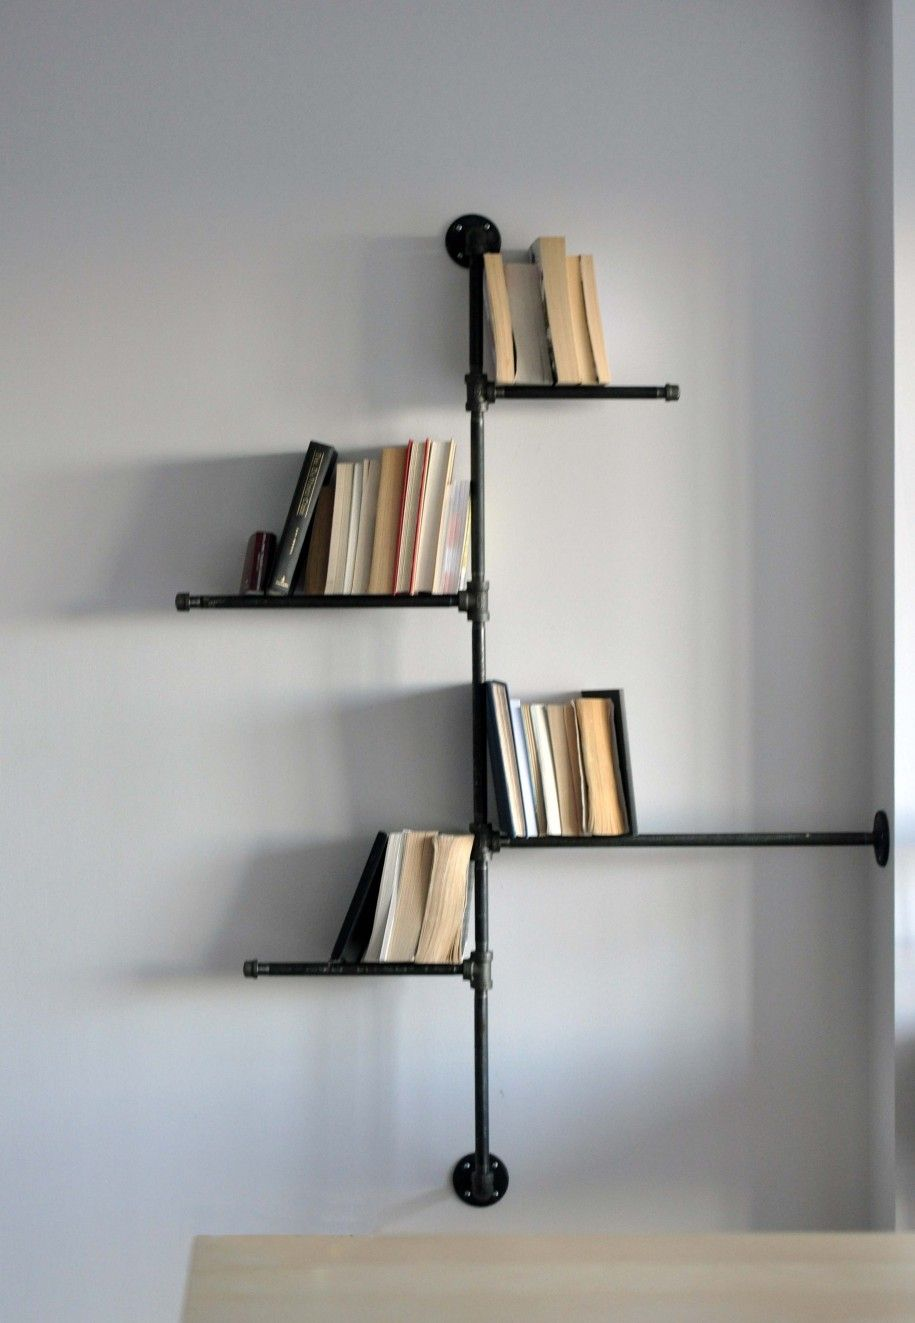 Wall Hanging Shelves Design decorative wall mounted shelving units white wooden labyrinth style wall mounted bookcase for book organizer idea Shelf Design Fantastic Hanging Bookshelf Furniture